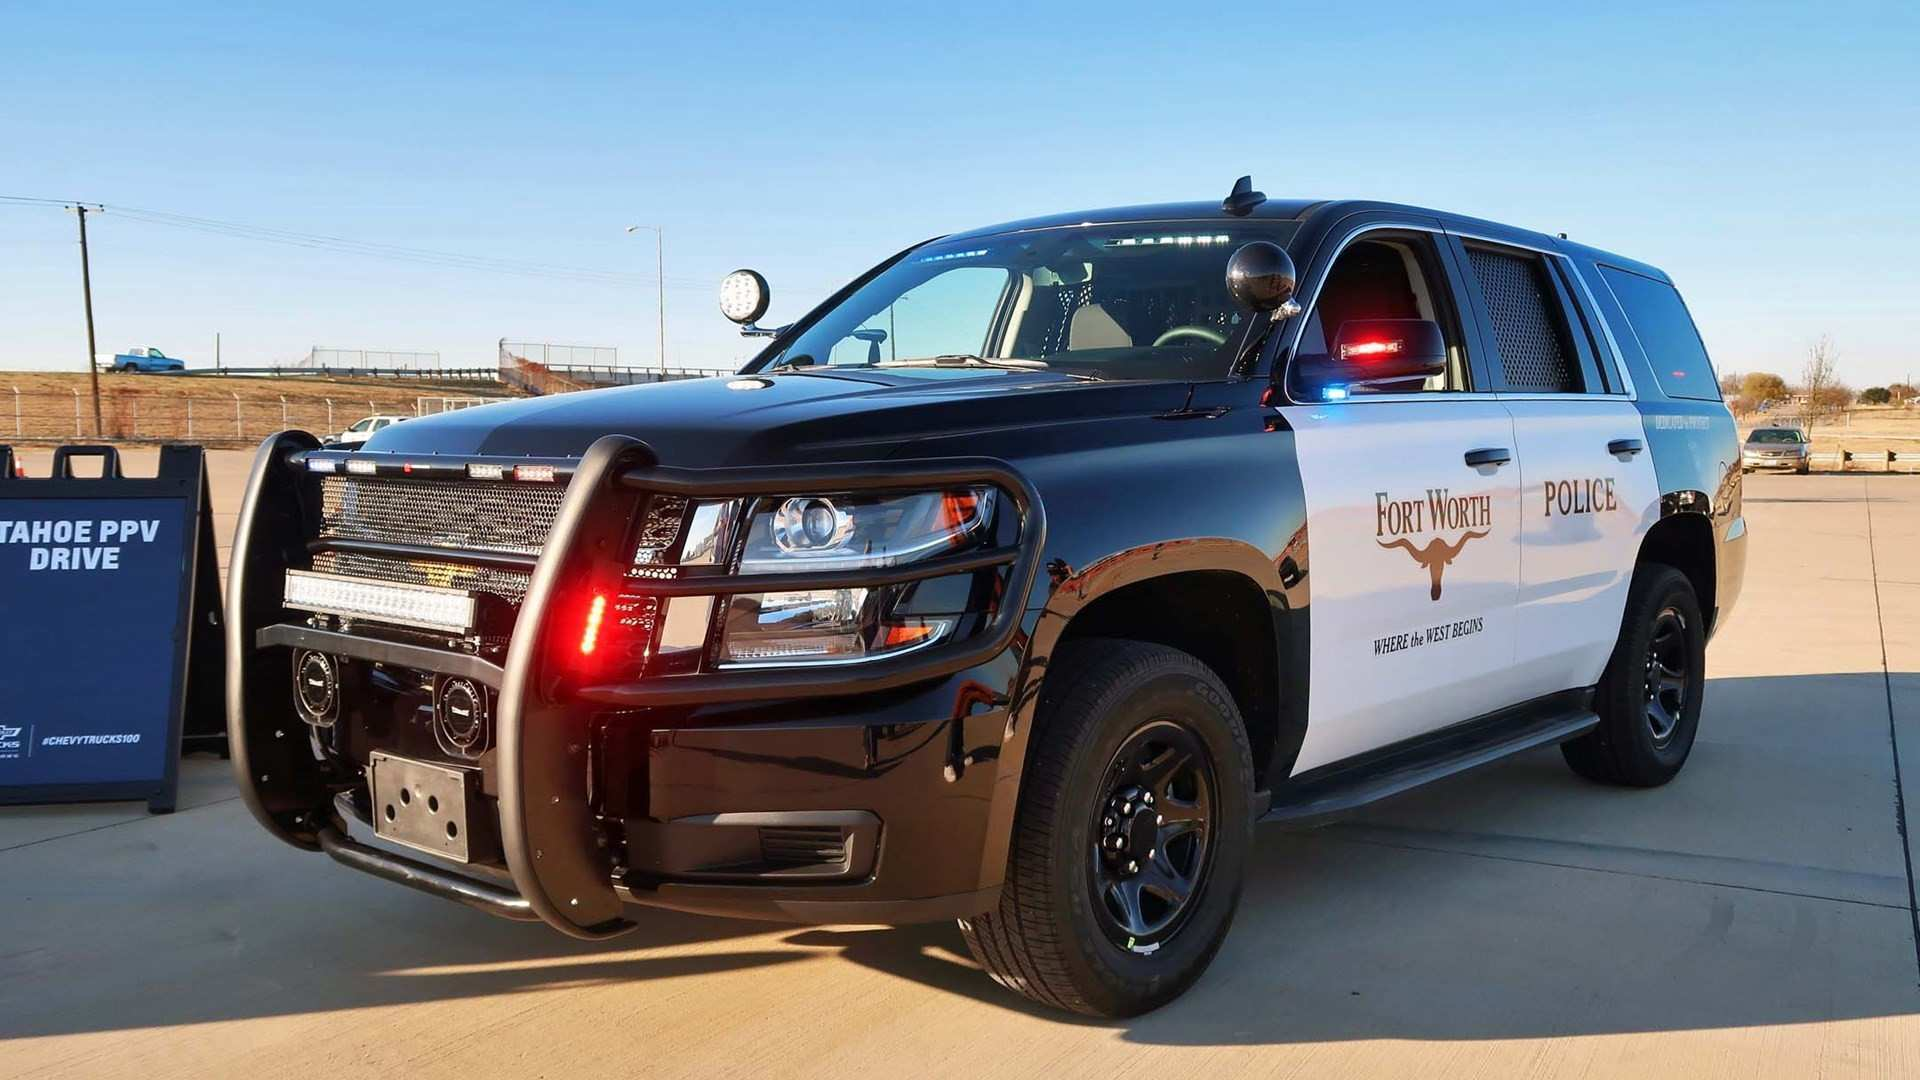 47 Great 2019 Chevrolet Police Vehicles Price and Review with 2019 Chevrolet Police Vehicles